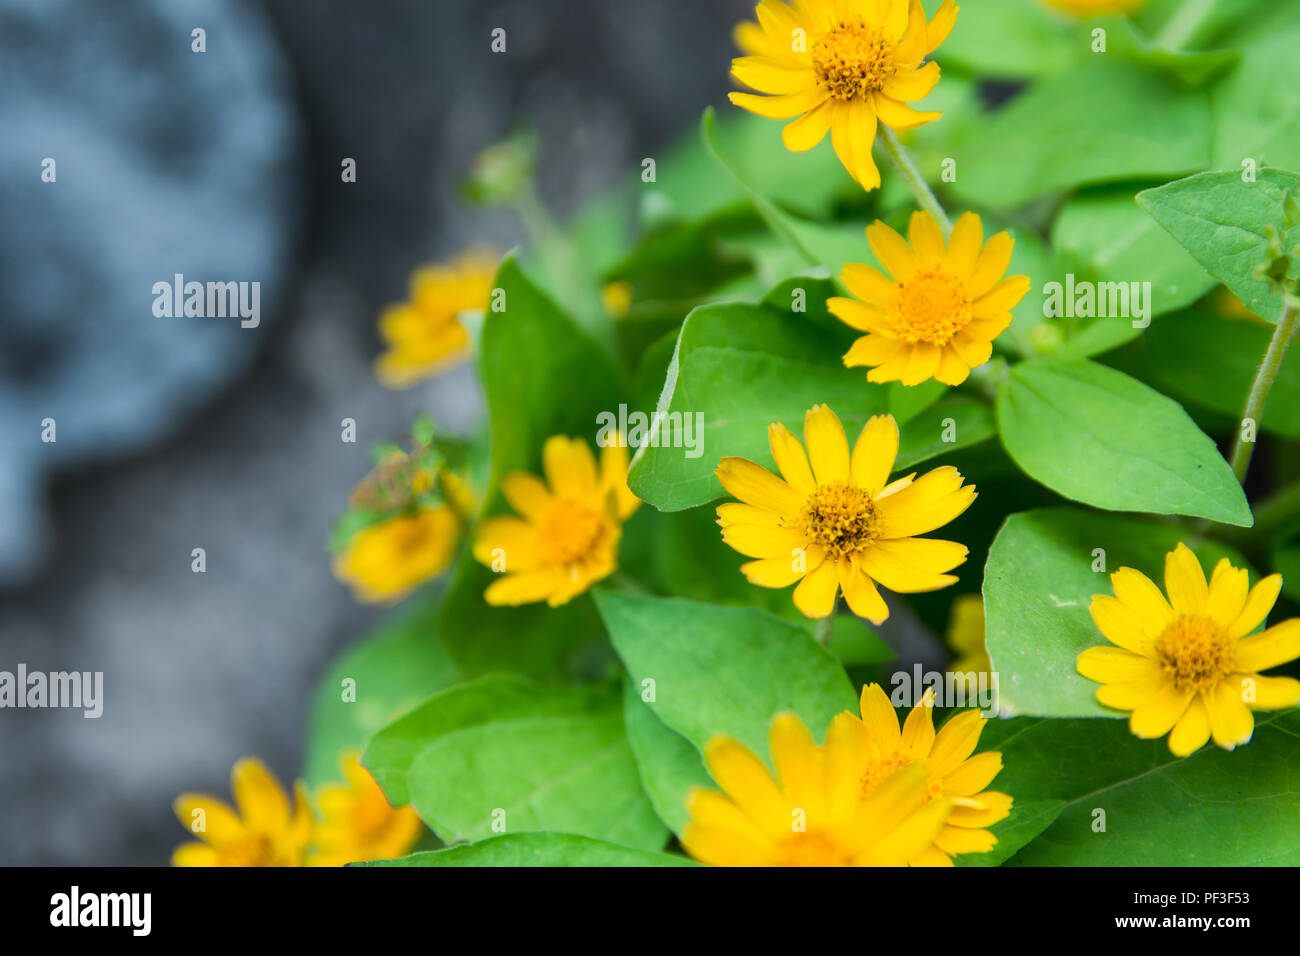 Little yellow star flower singapore dailsy melampodium divaricatum little yellow star flower singapore dailsy melampodium divaricatum with leaf green background and copy space mightylinksfo